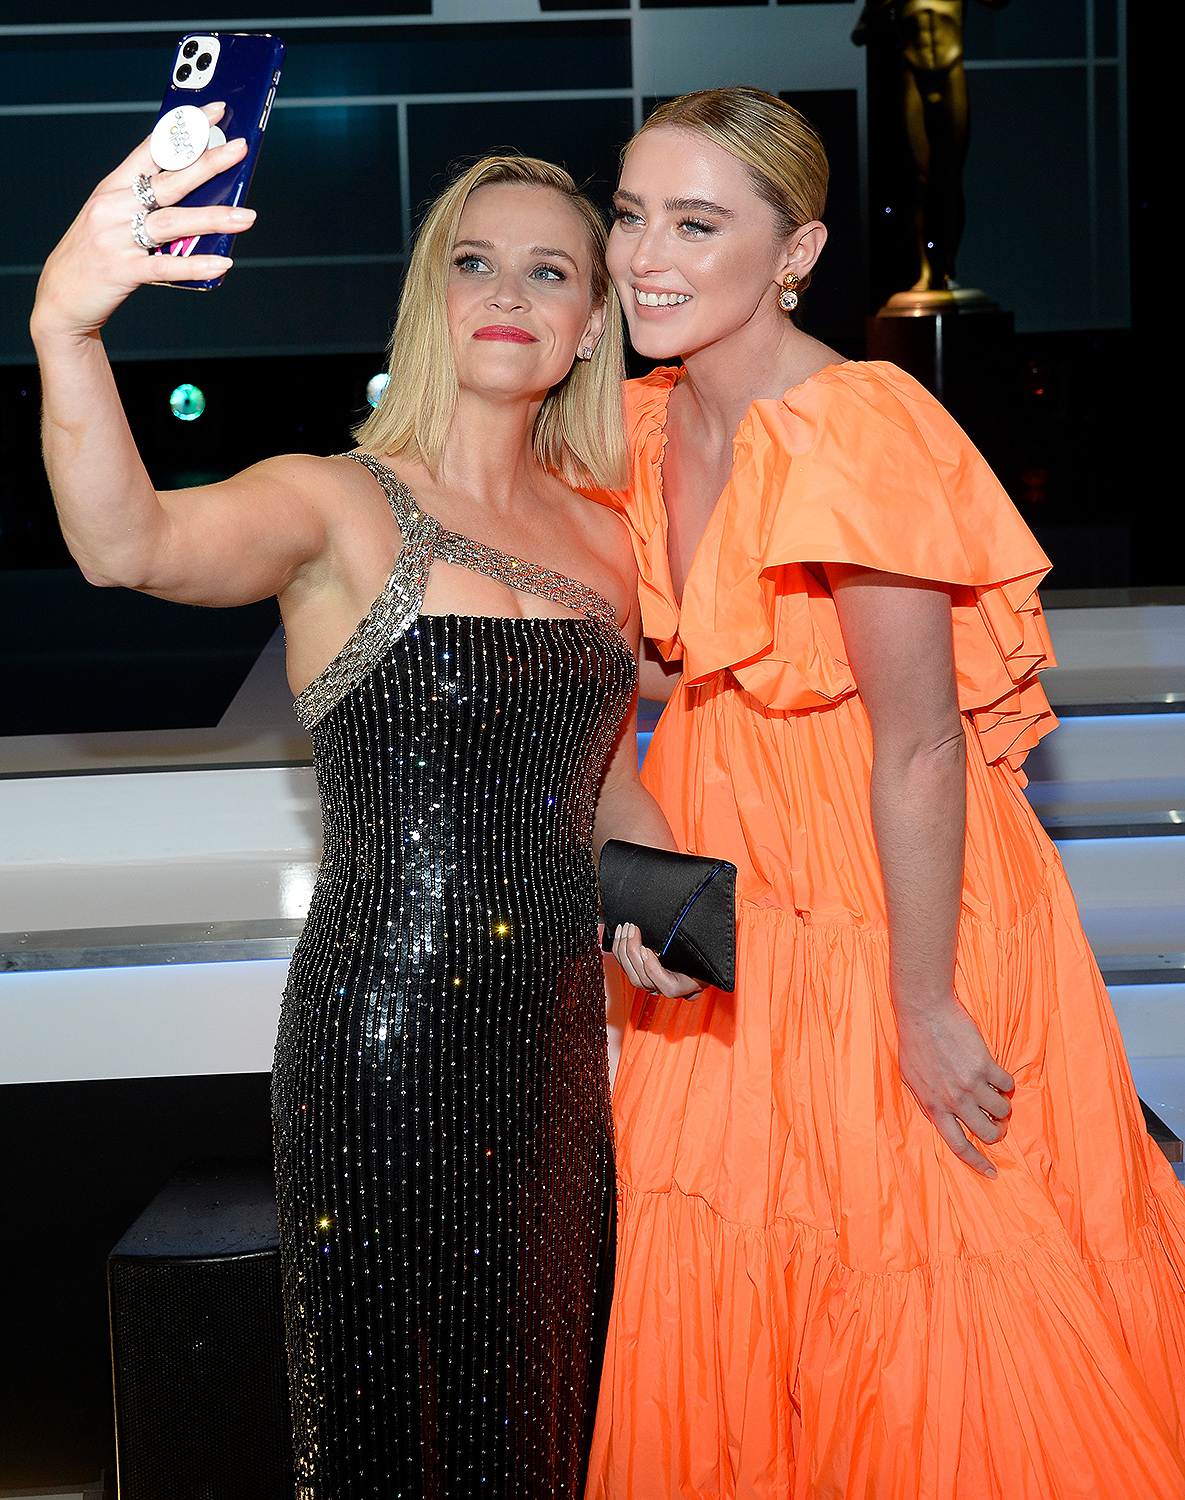 Reese Witherspoon and Kathryn Newton